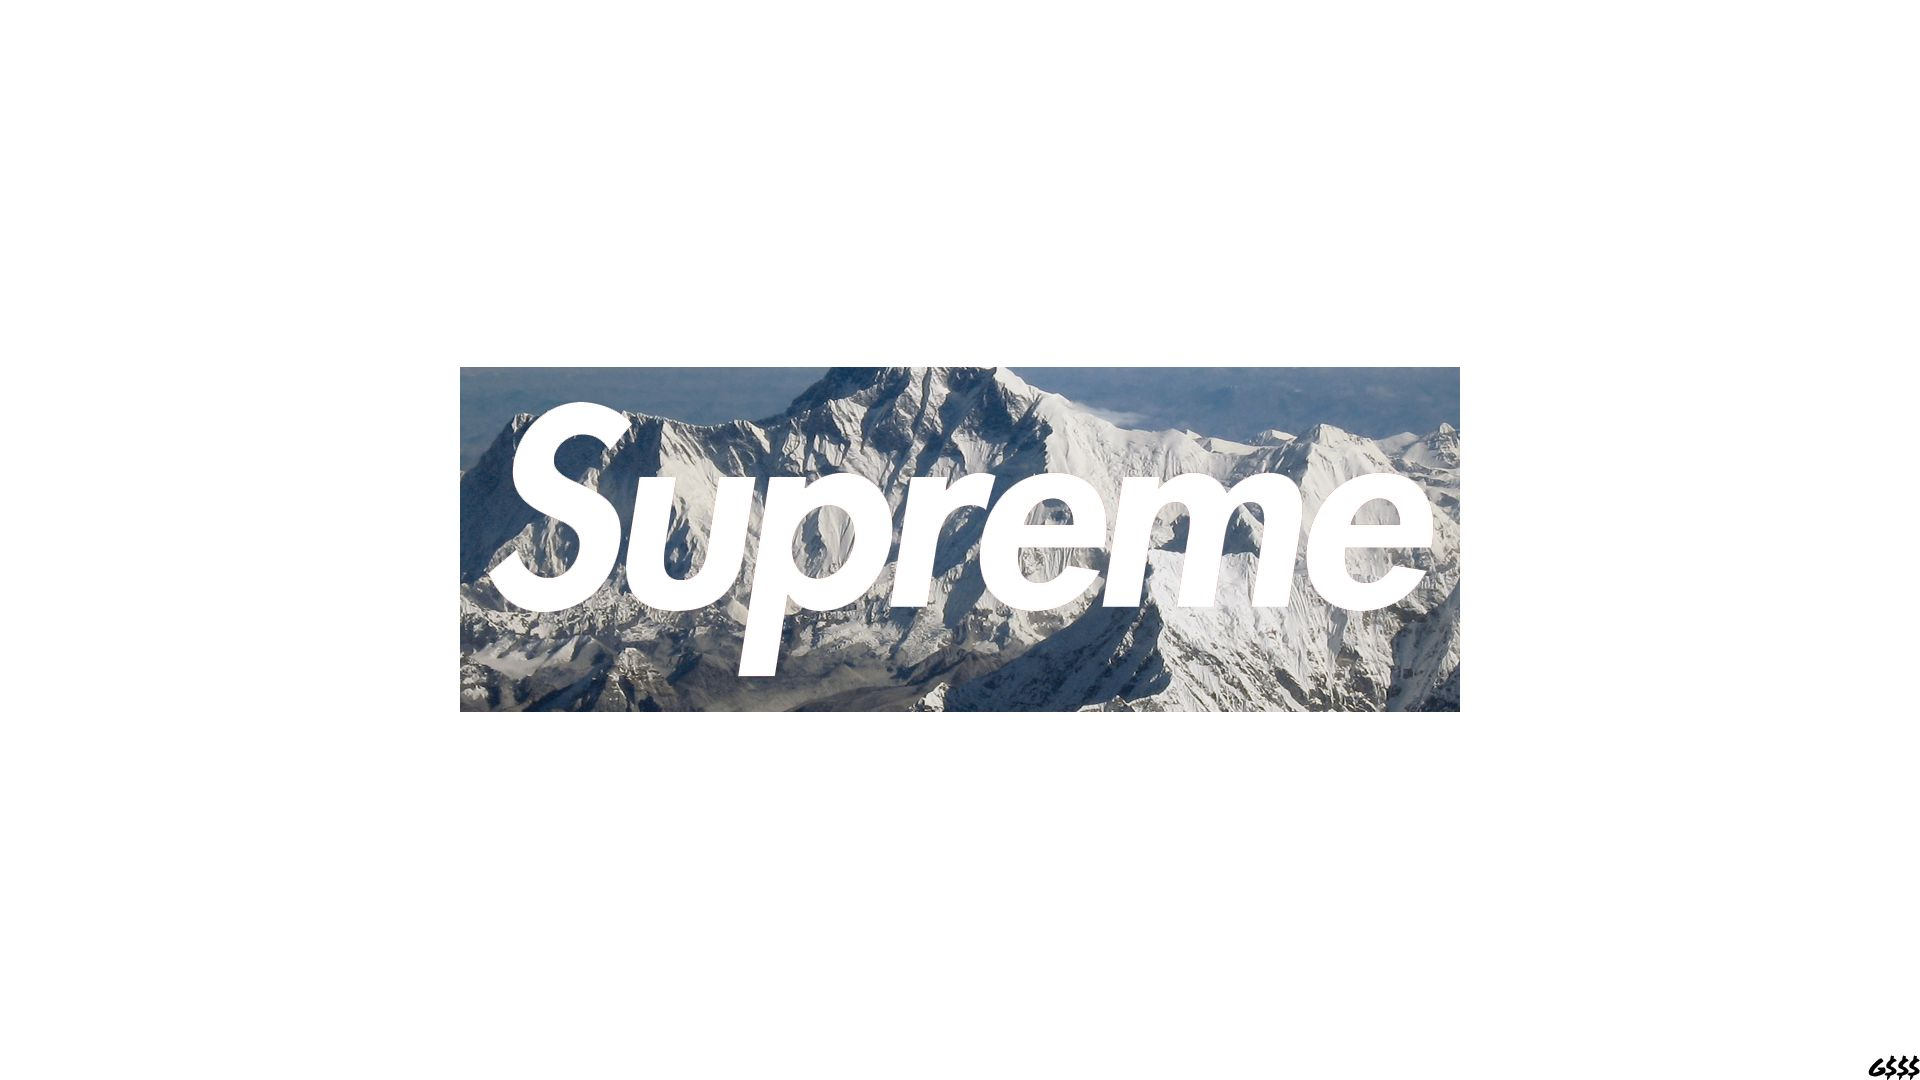 Supreme Wallpapers Supreme Wallpaper Desktop Wallpaper Art Hypebeast Iphone Wallpaper